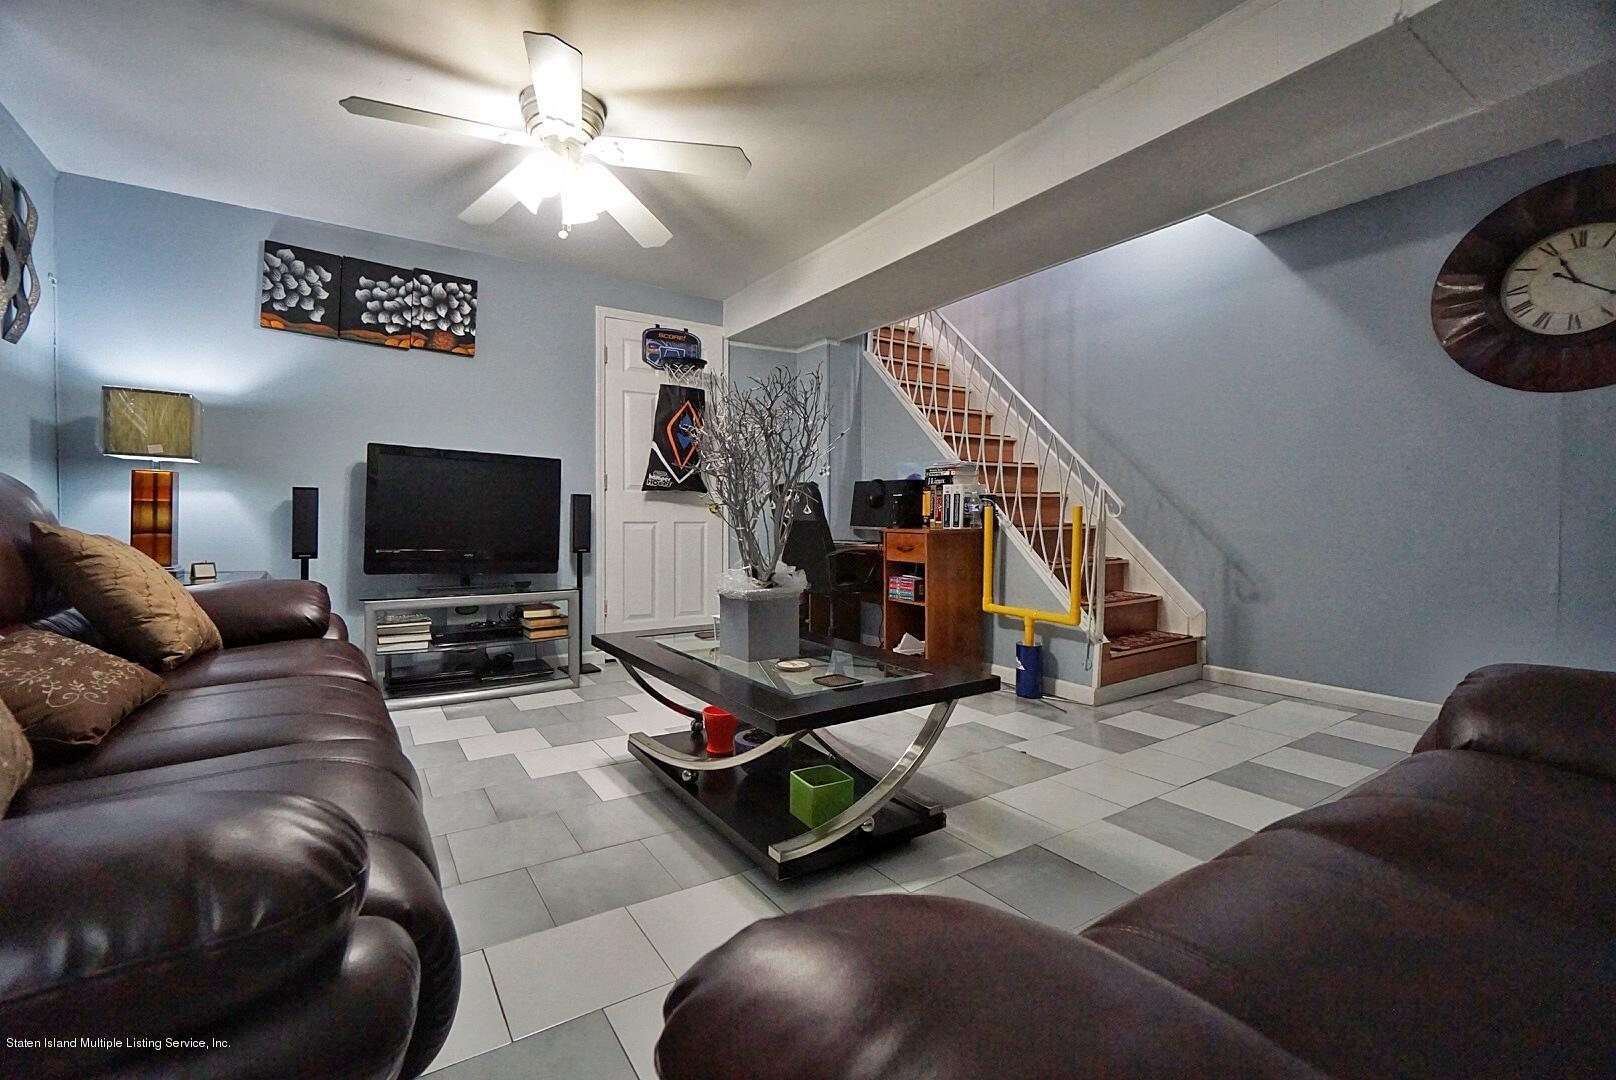 Single Family - Semi-Attached 12 Signs Road  Staten Island, NY 10314, MLS-1123889-15